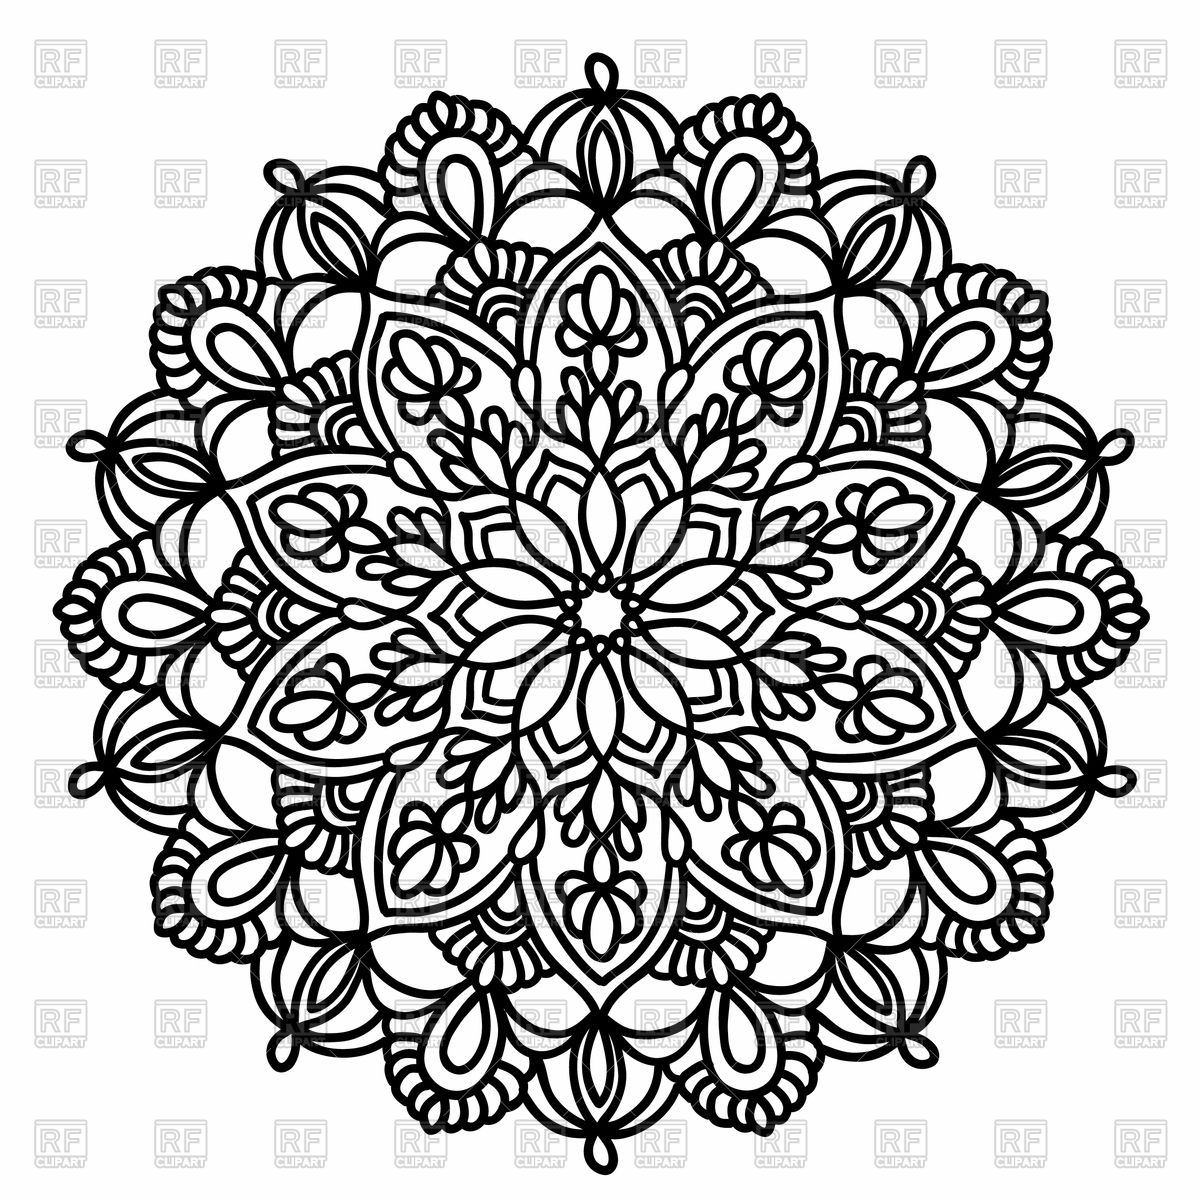 snowflake coloring page - ornamental round pattern with floral elements mandala vector clipart